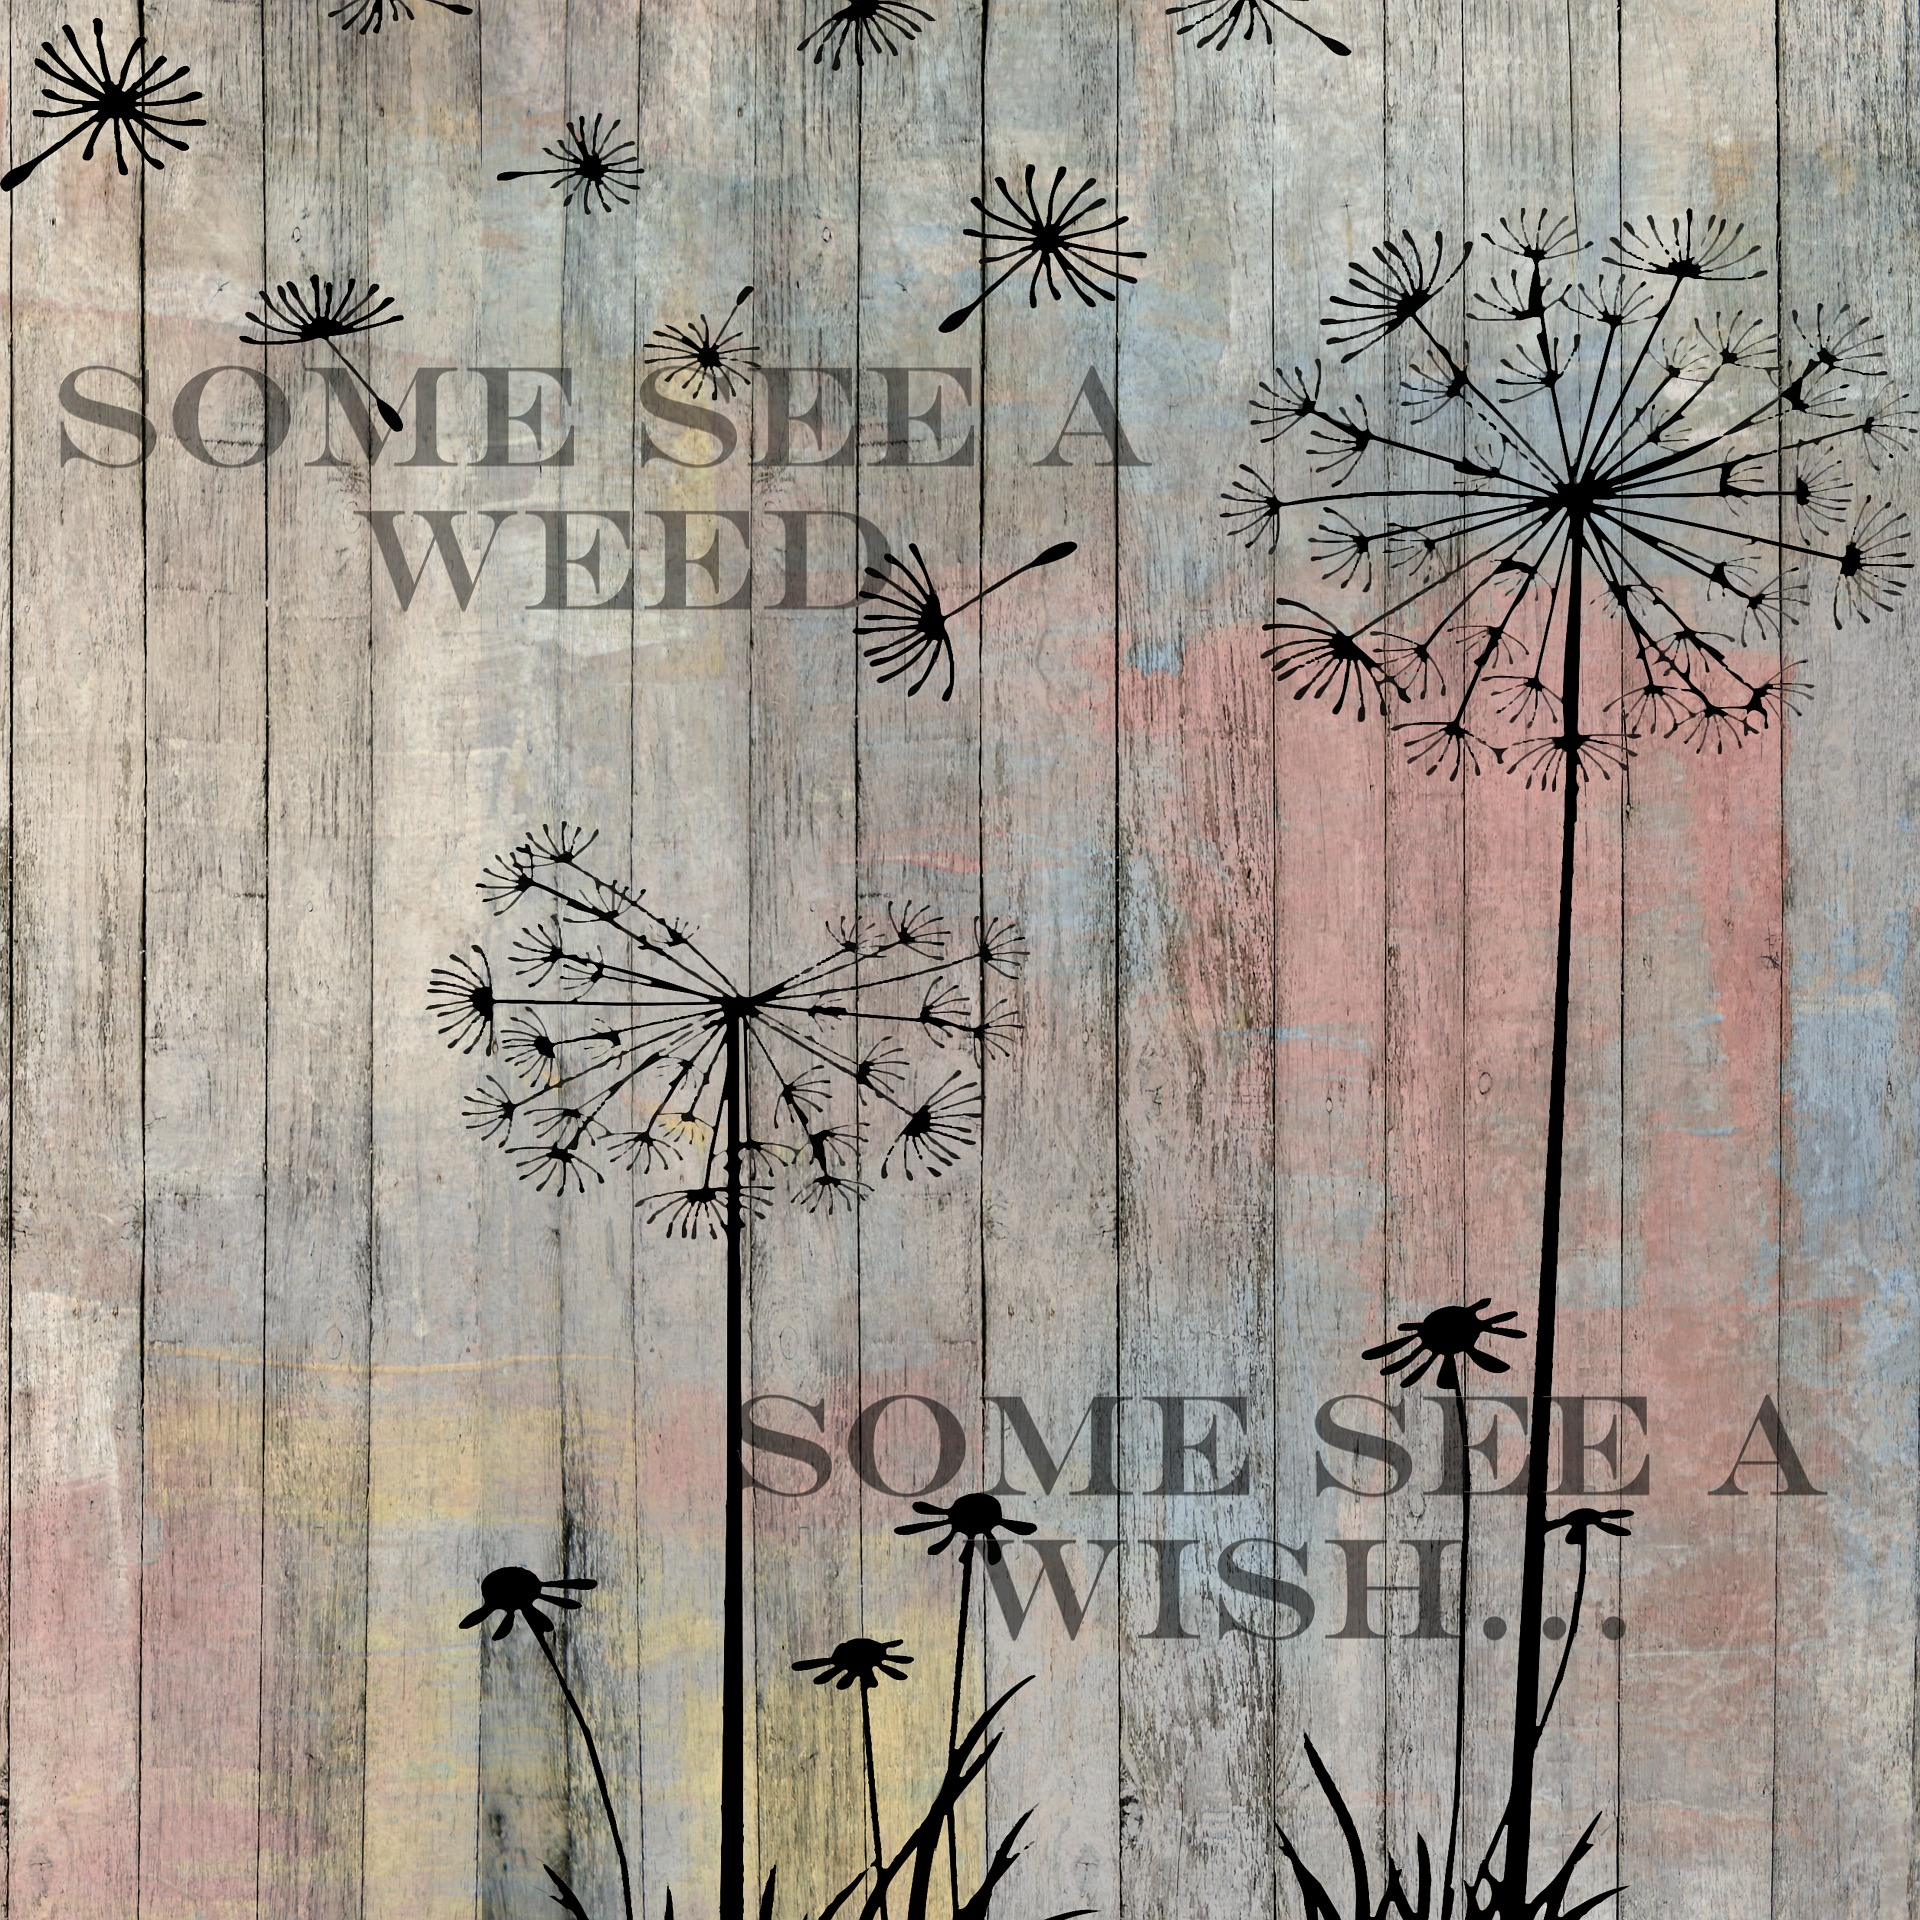 Some see a weed, some see a wish... Dandelions.